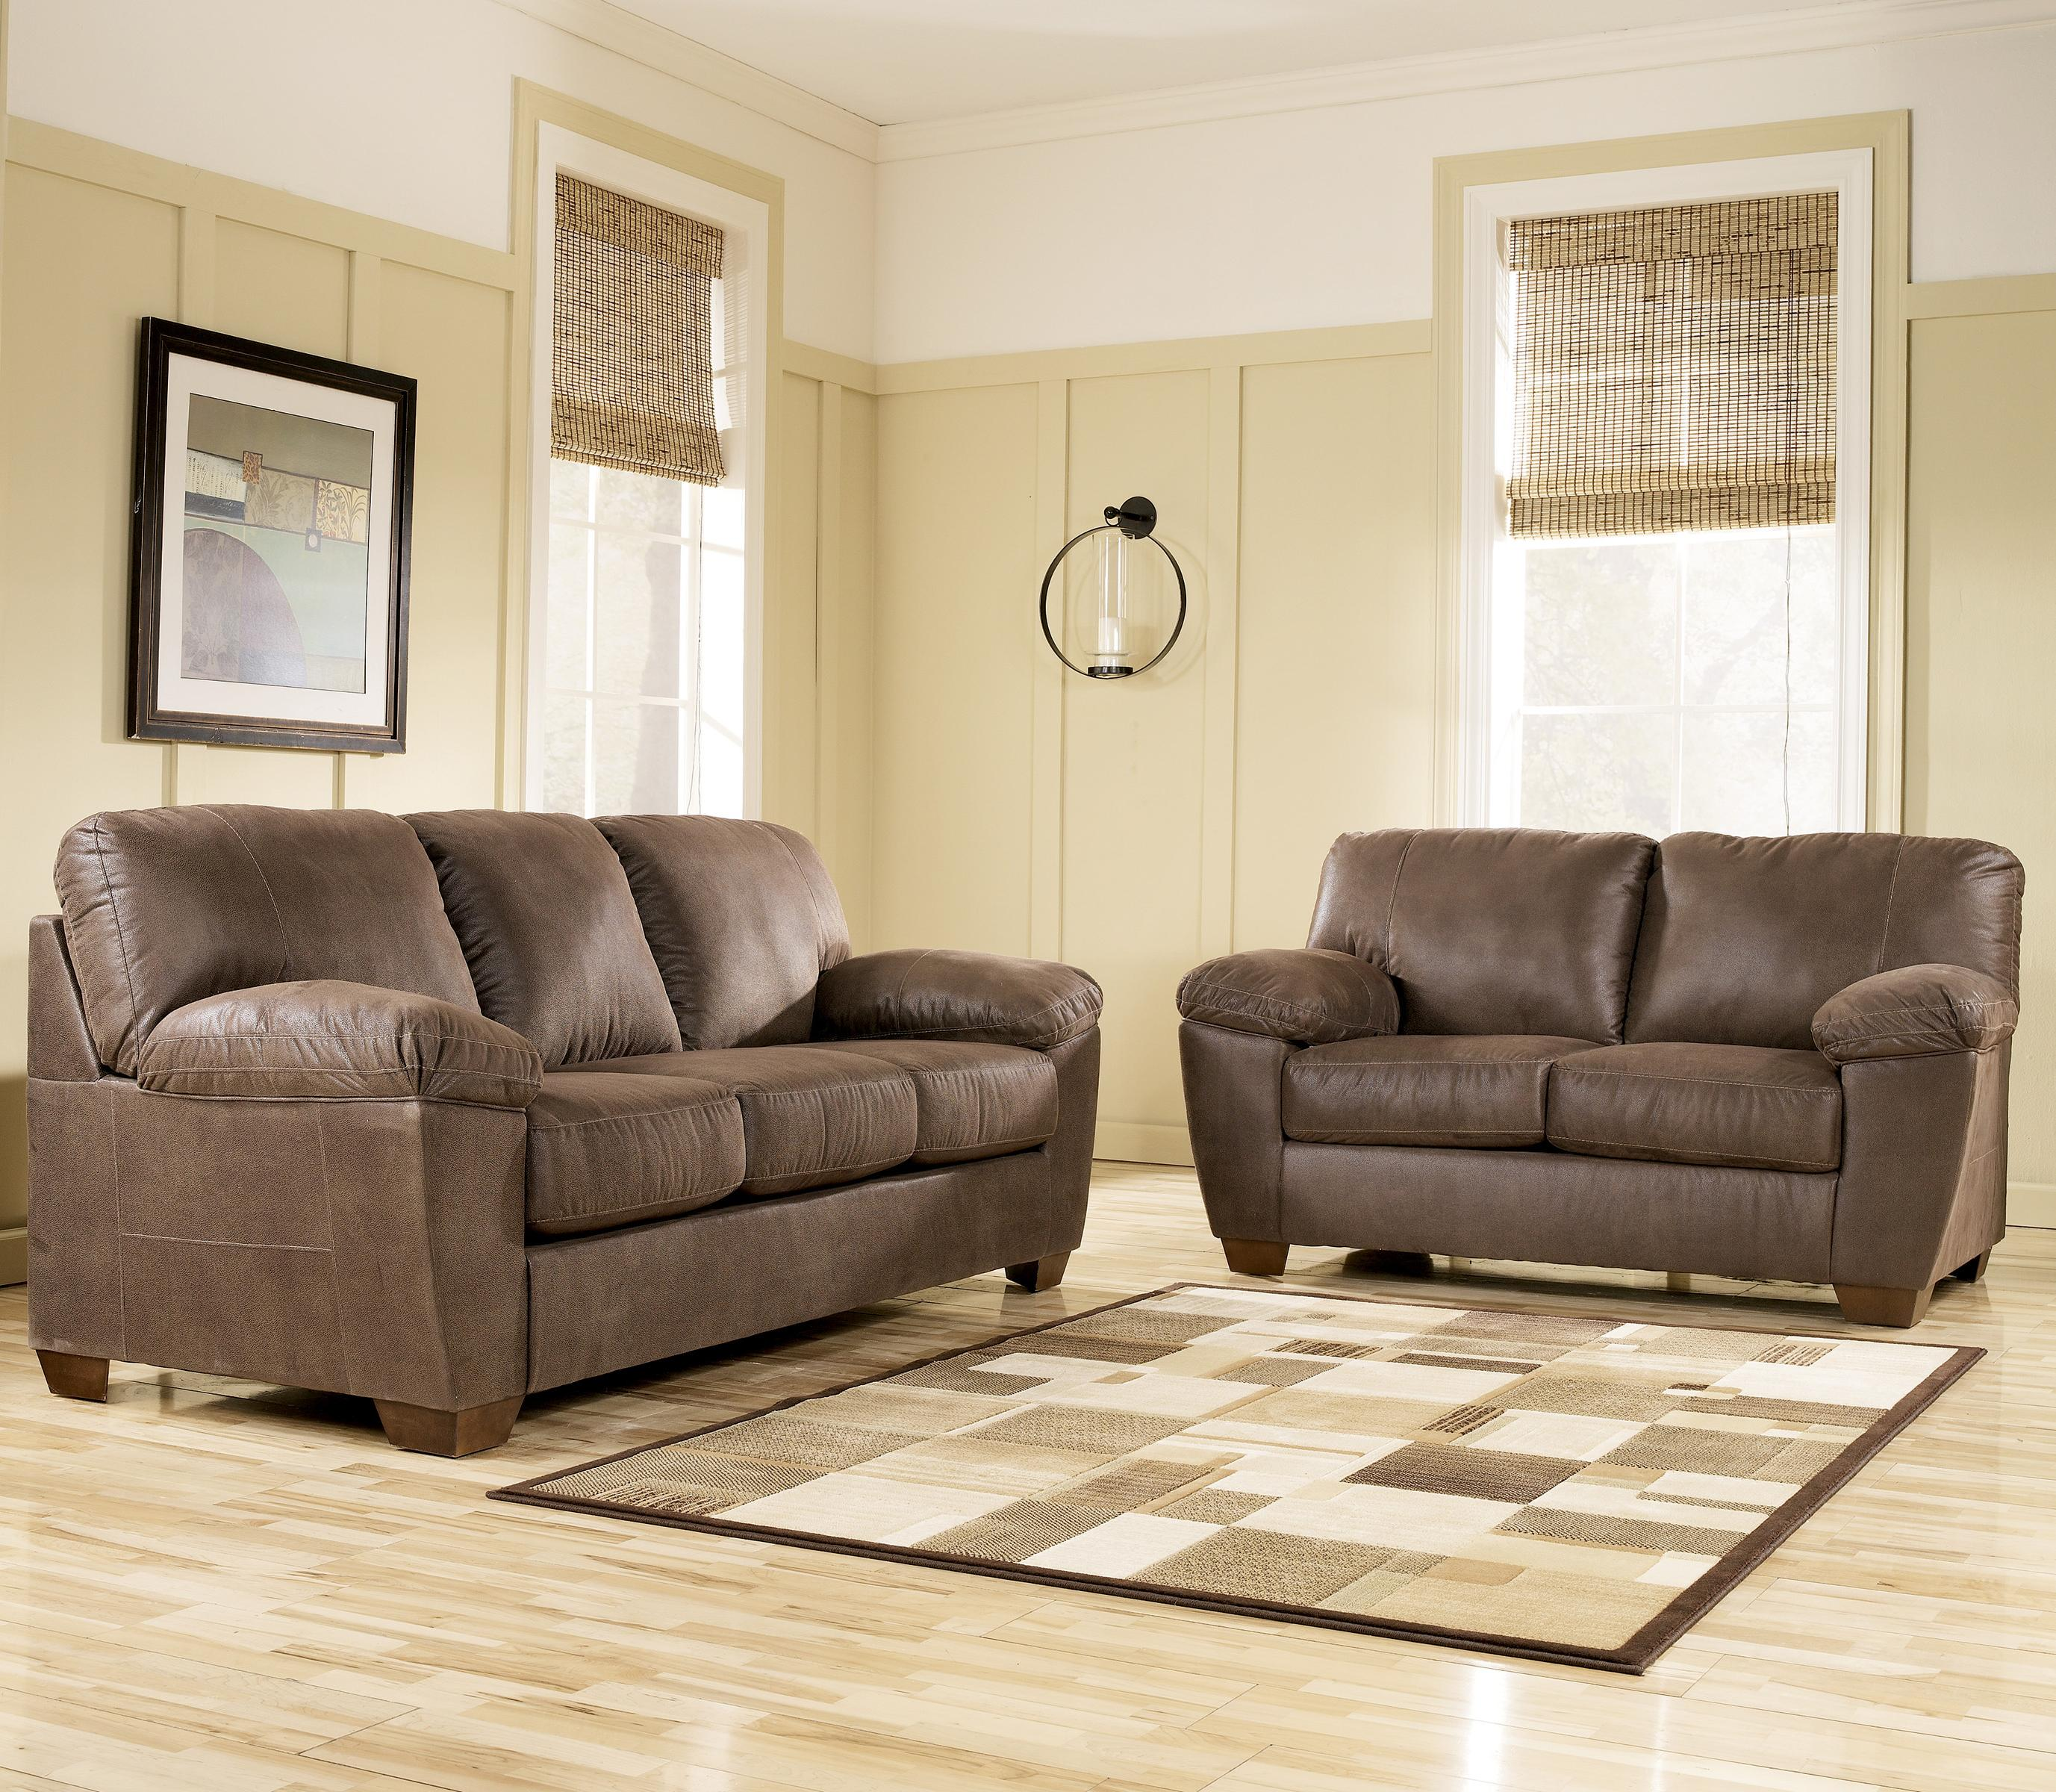 Signature Design By Ashley Amazon Walnut 6750535 Loveseat With Pillow Arms Household